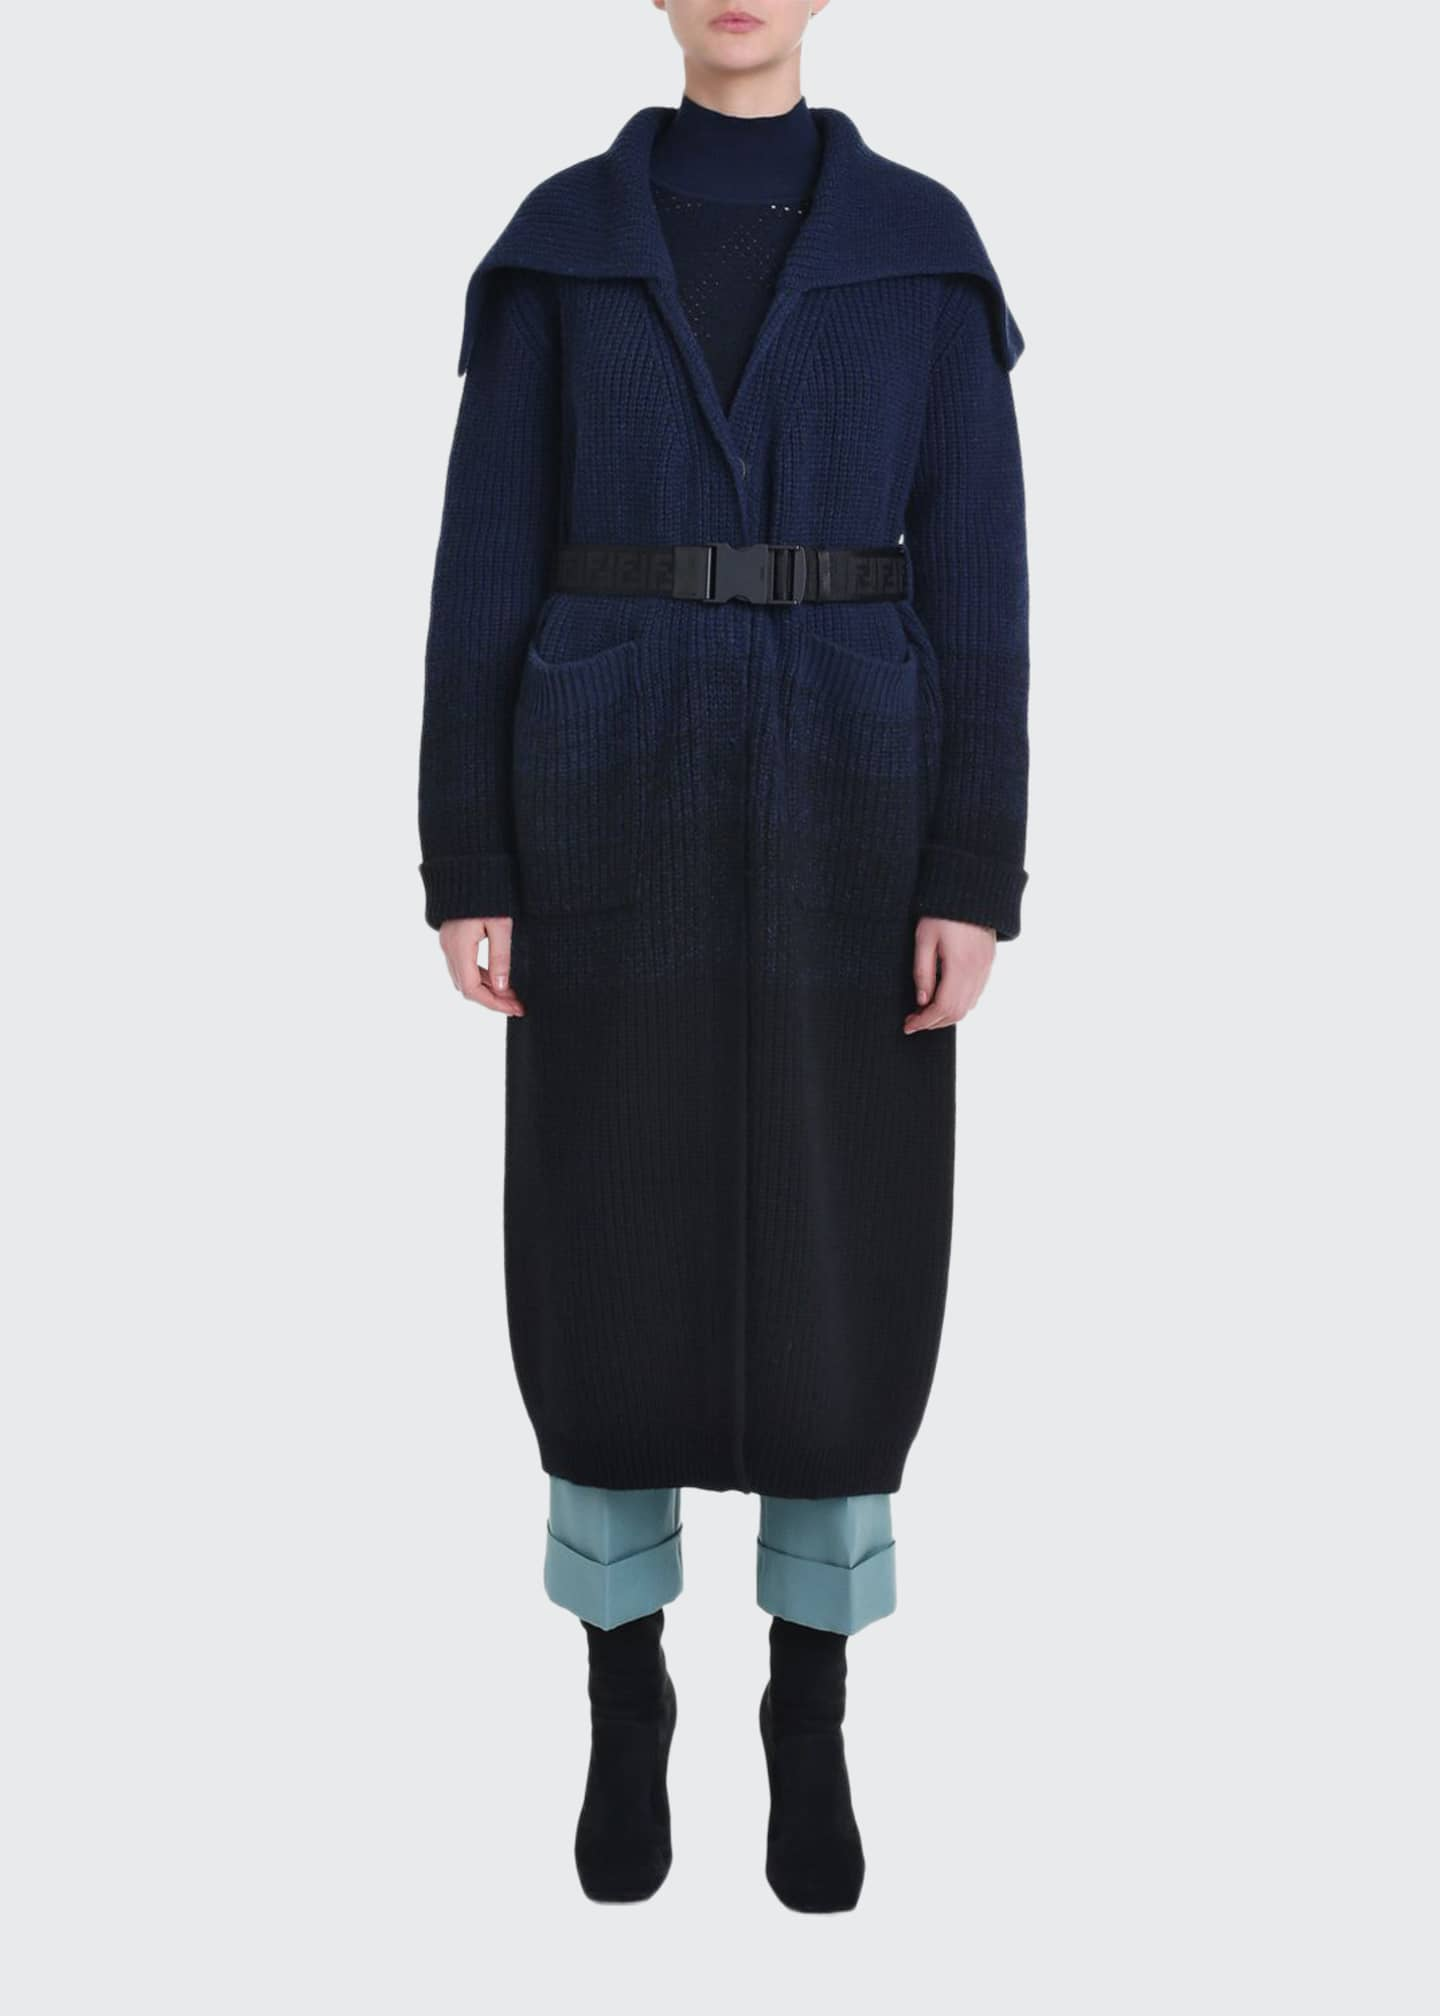 Fendi Ombre Ribbed Knit Coat